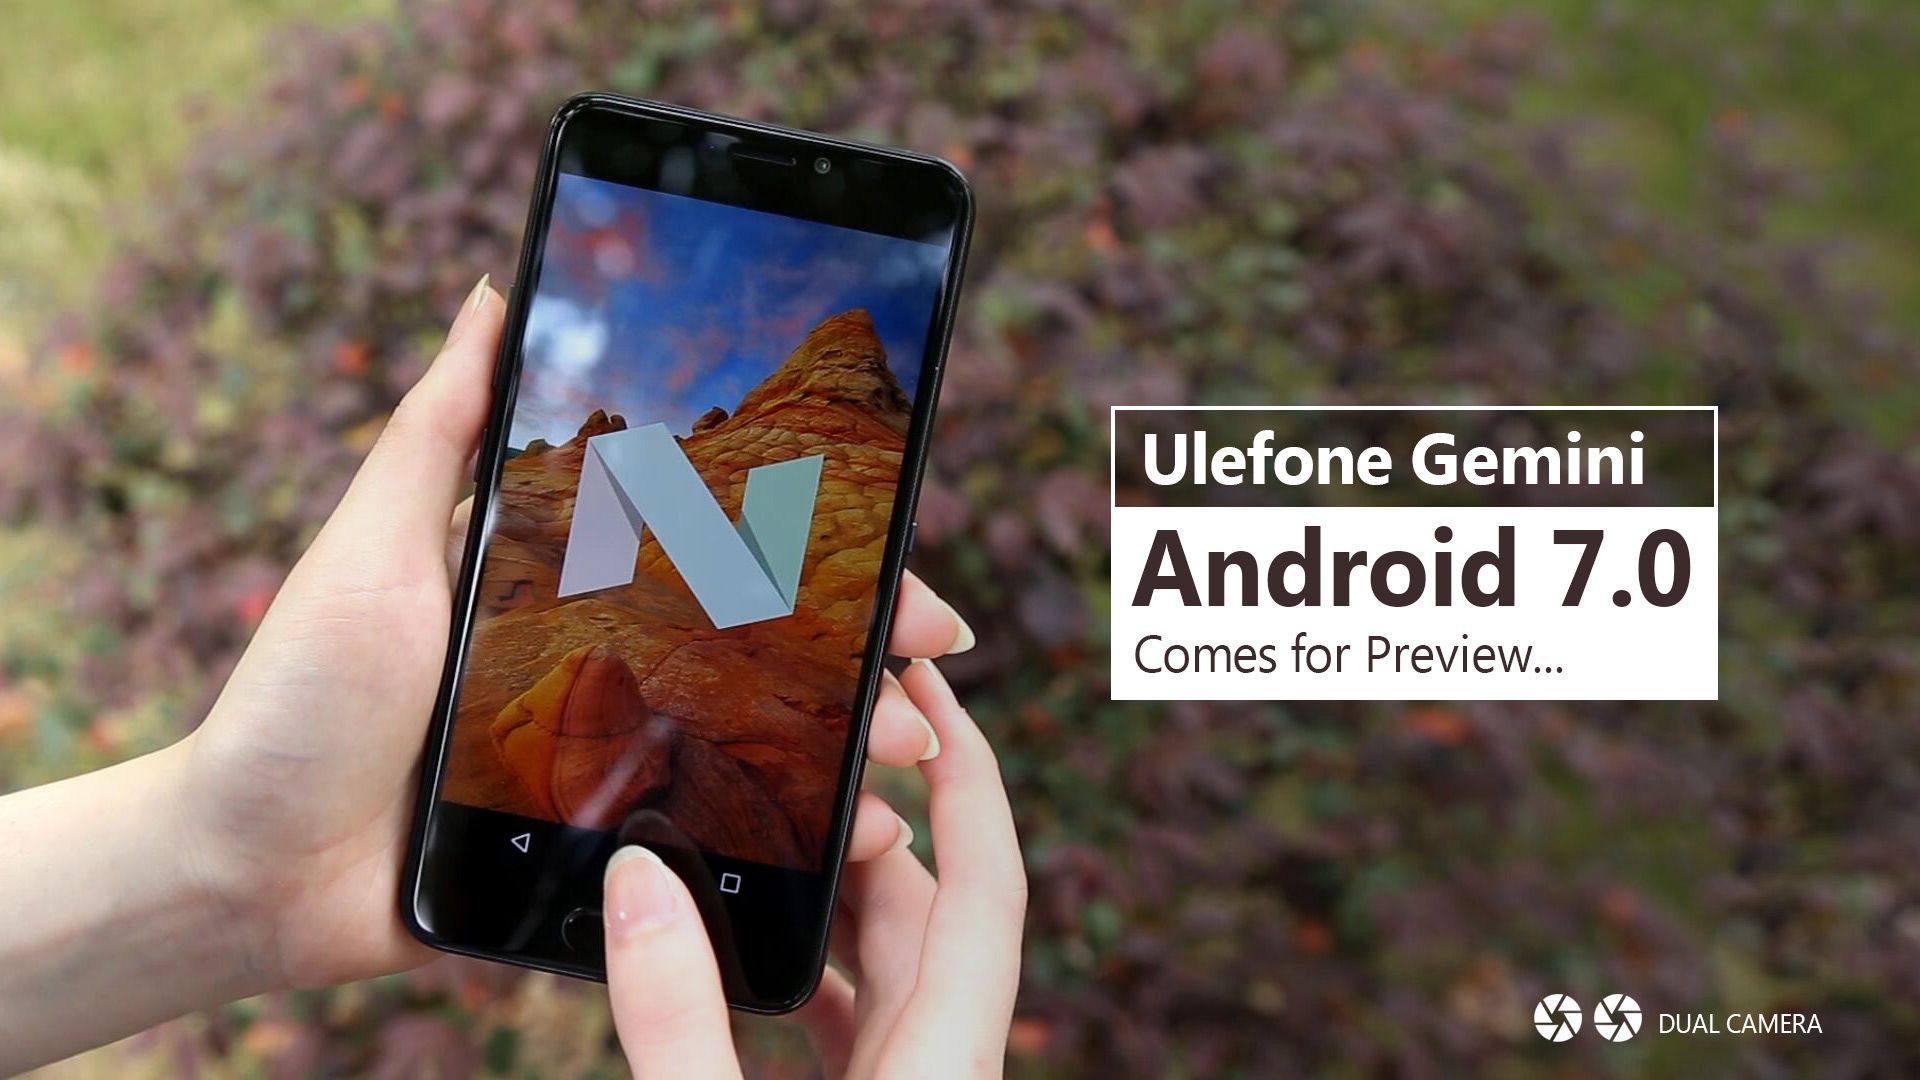 Ulefone Gemini Gets First Preview Of Android 7.0 Nougat (Promoted